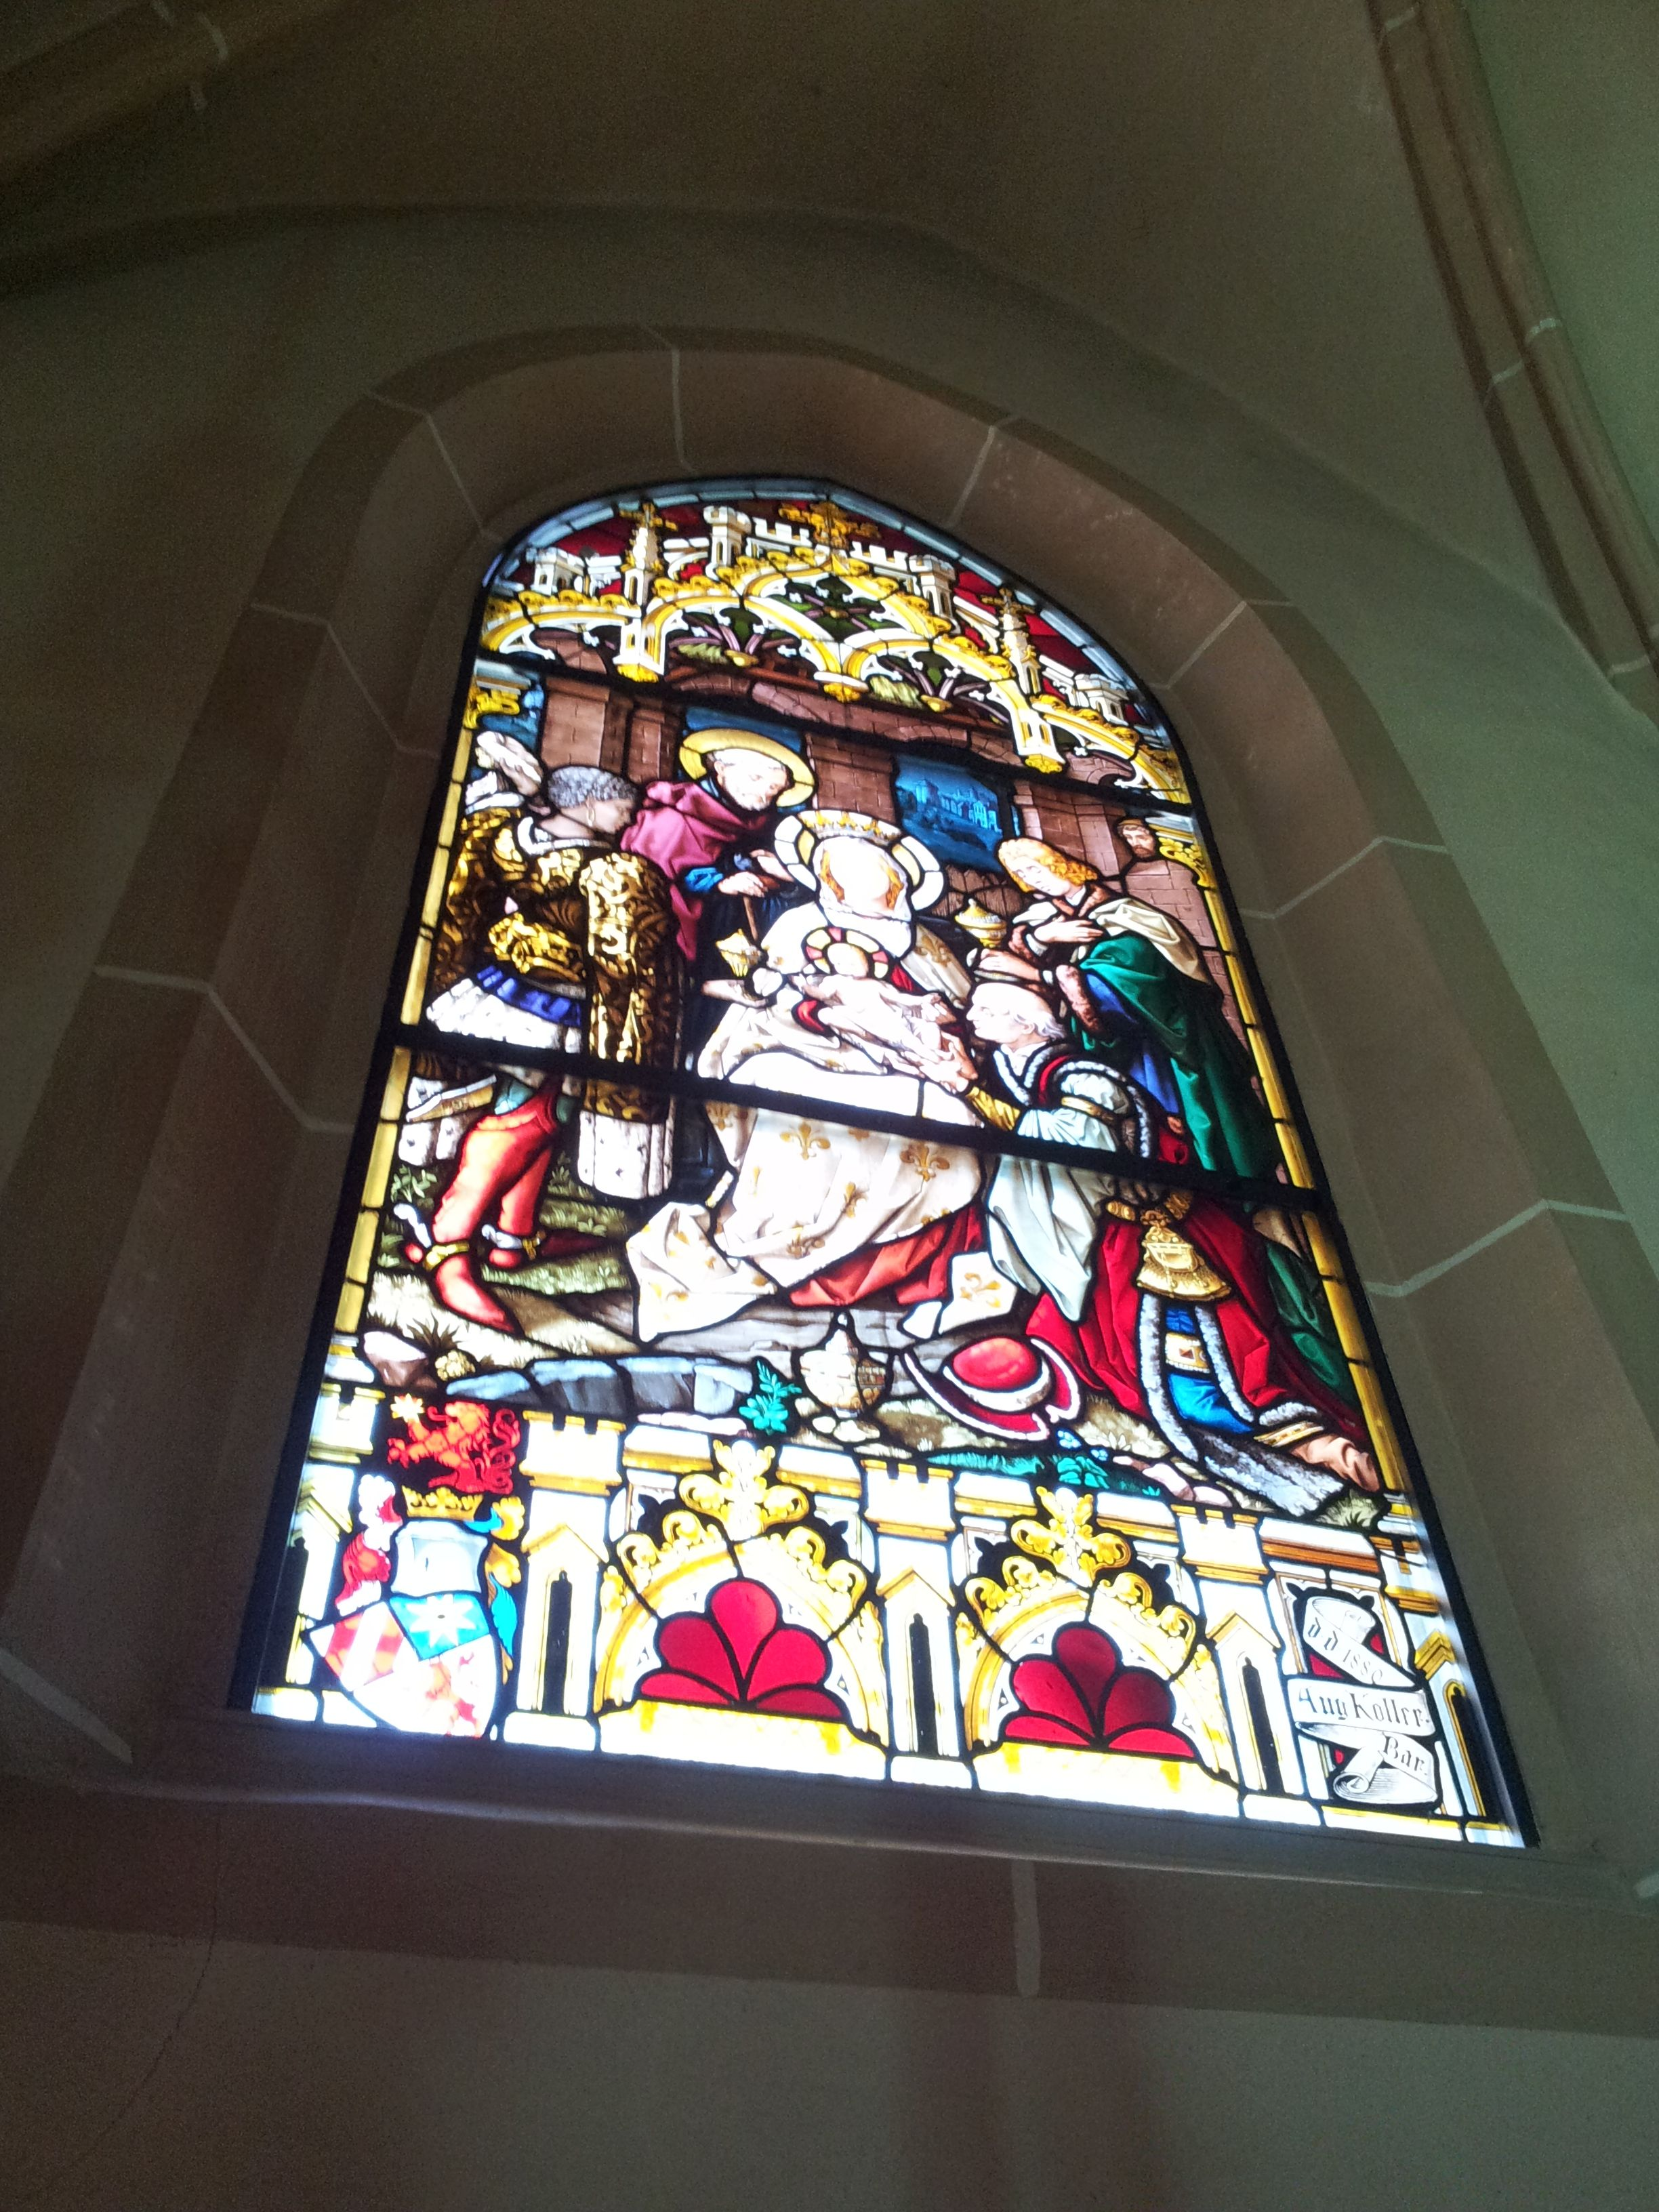 Adoration of the Magi in the St. Stephen's Church. Baden, Lower Austria